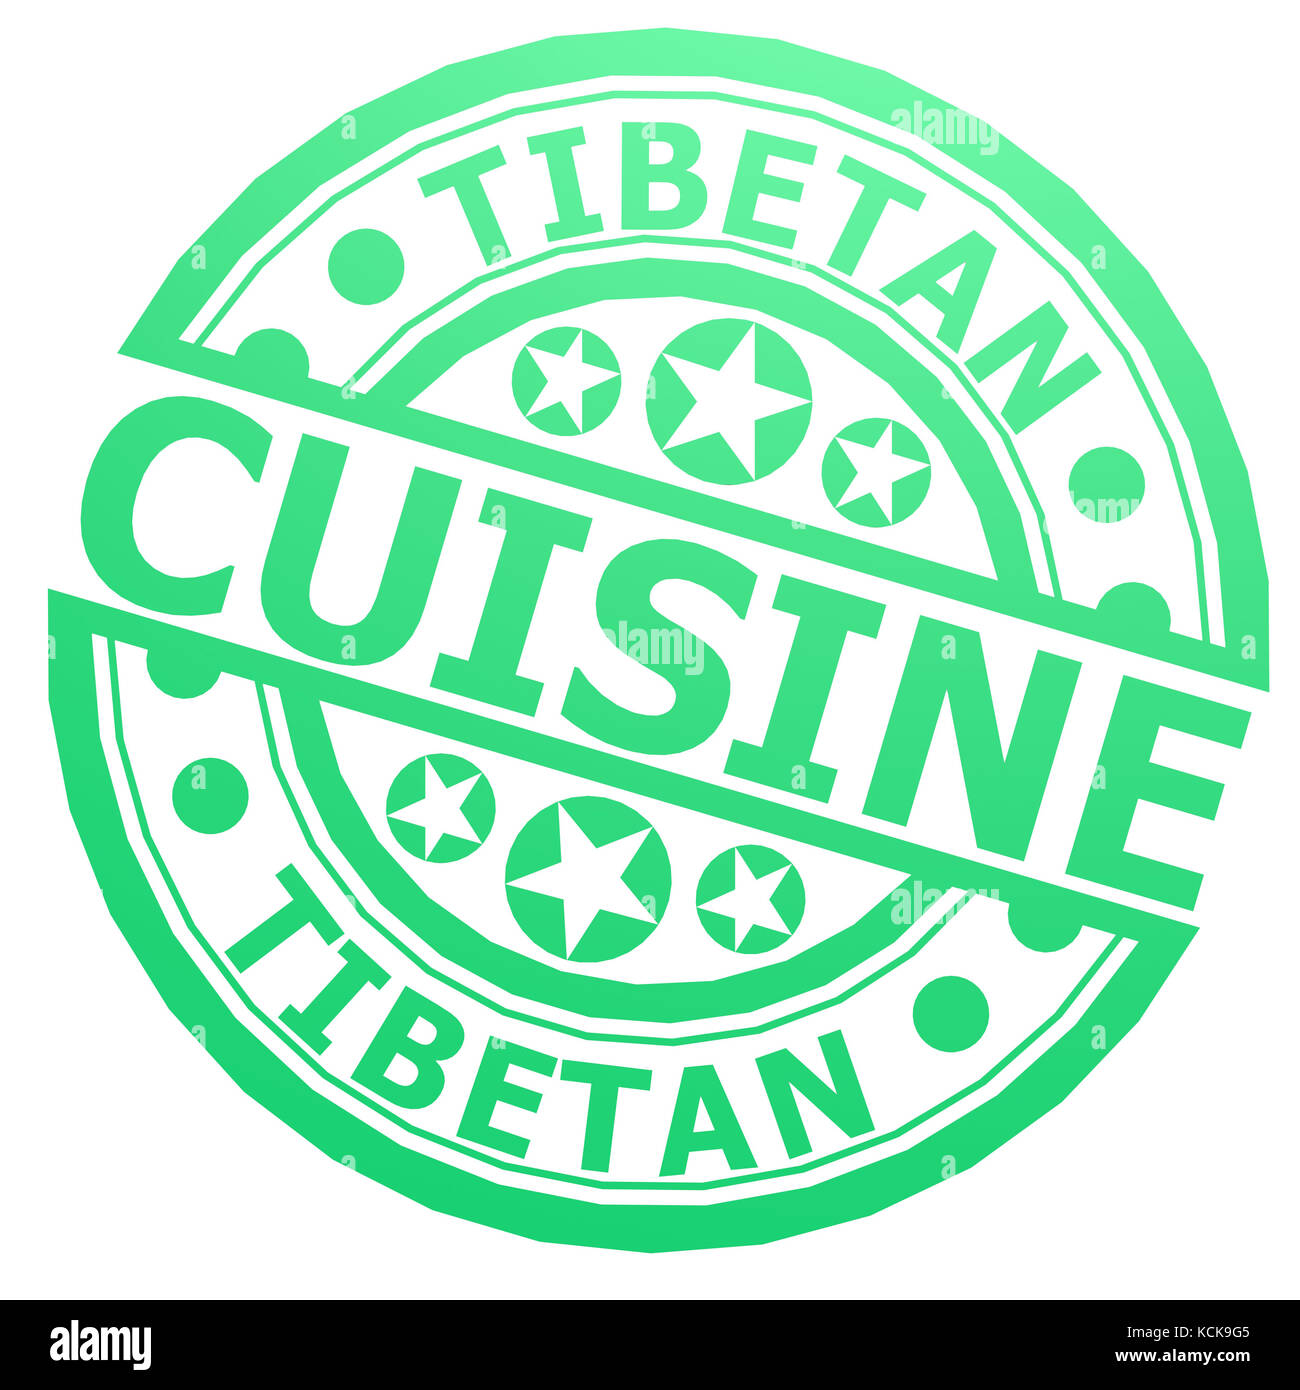 Tibetan cuisine stamp image with hi-res rendered artwork that could be used for any graphic design. - Stock Image